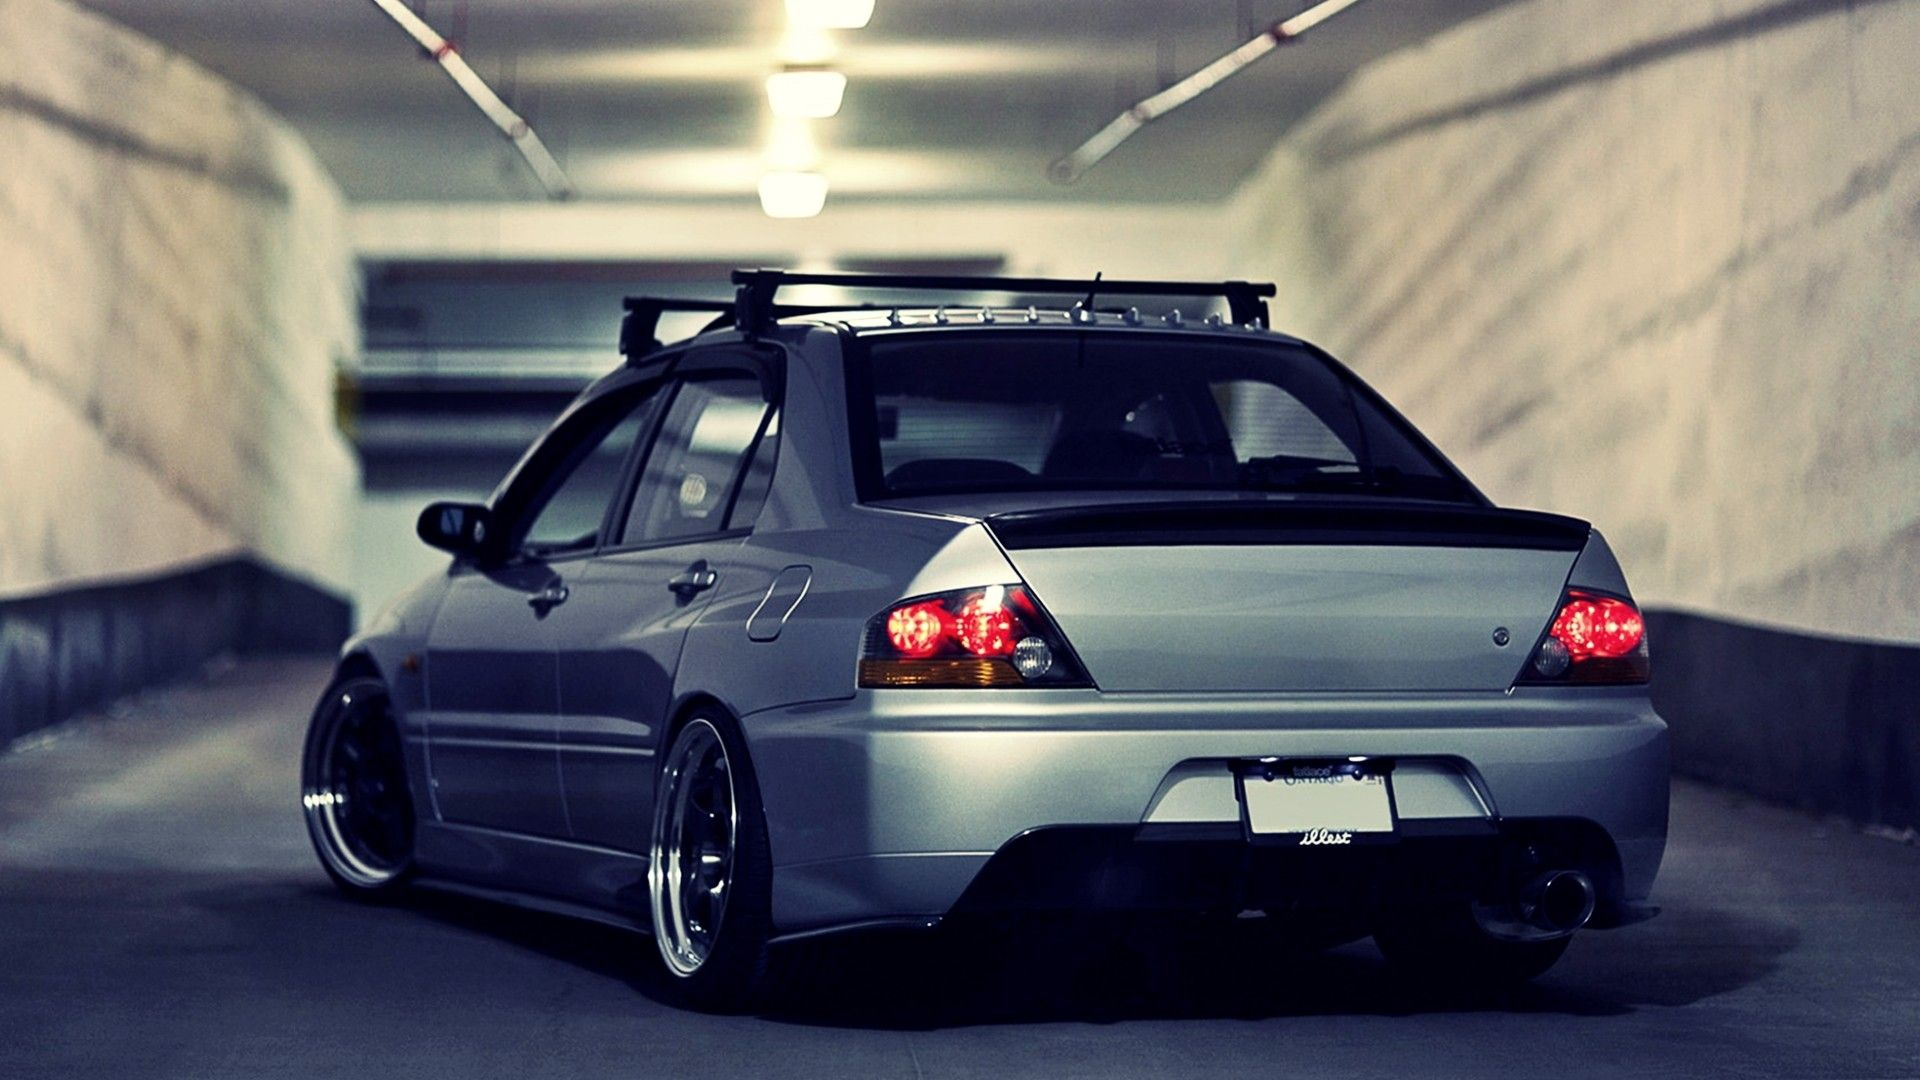 Mitsubishi Lancer Evolution Viii Euro Style Car Pinterest Cars